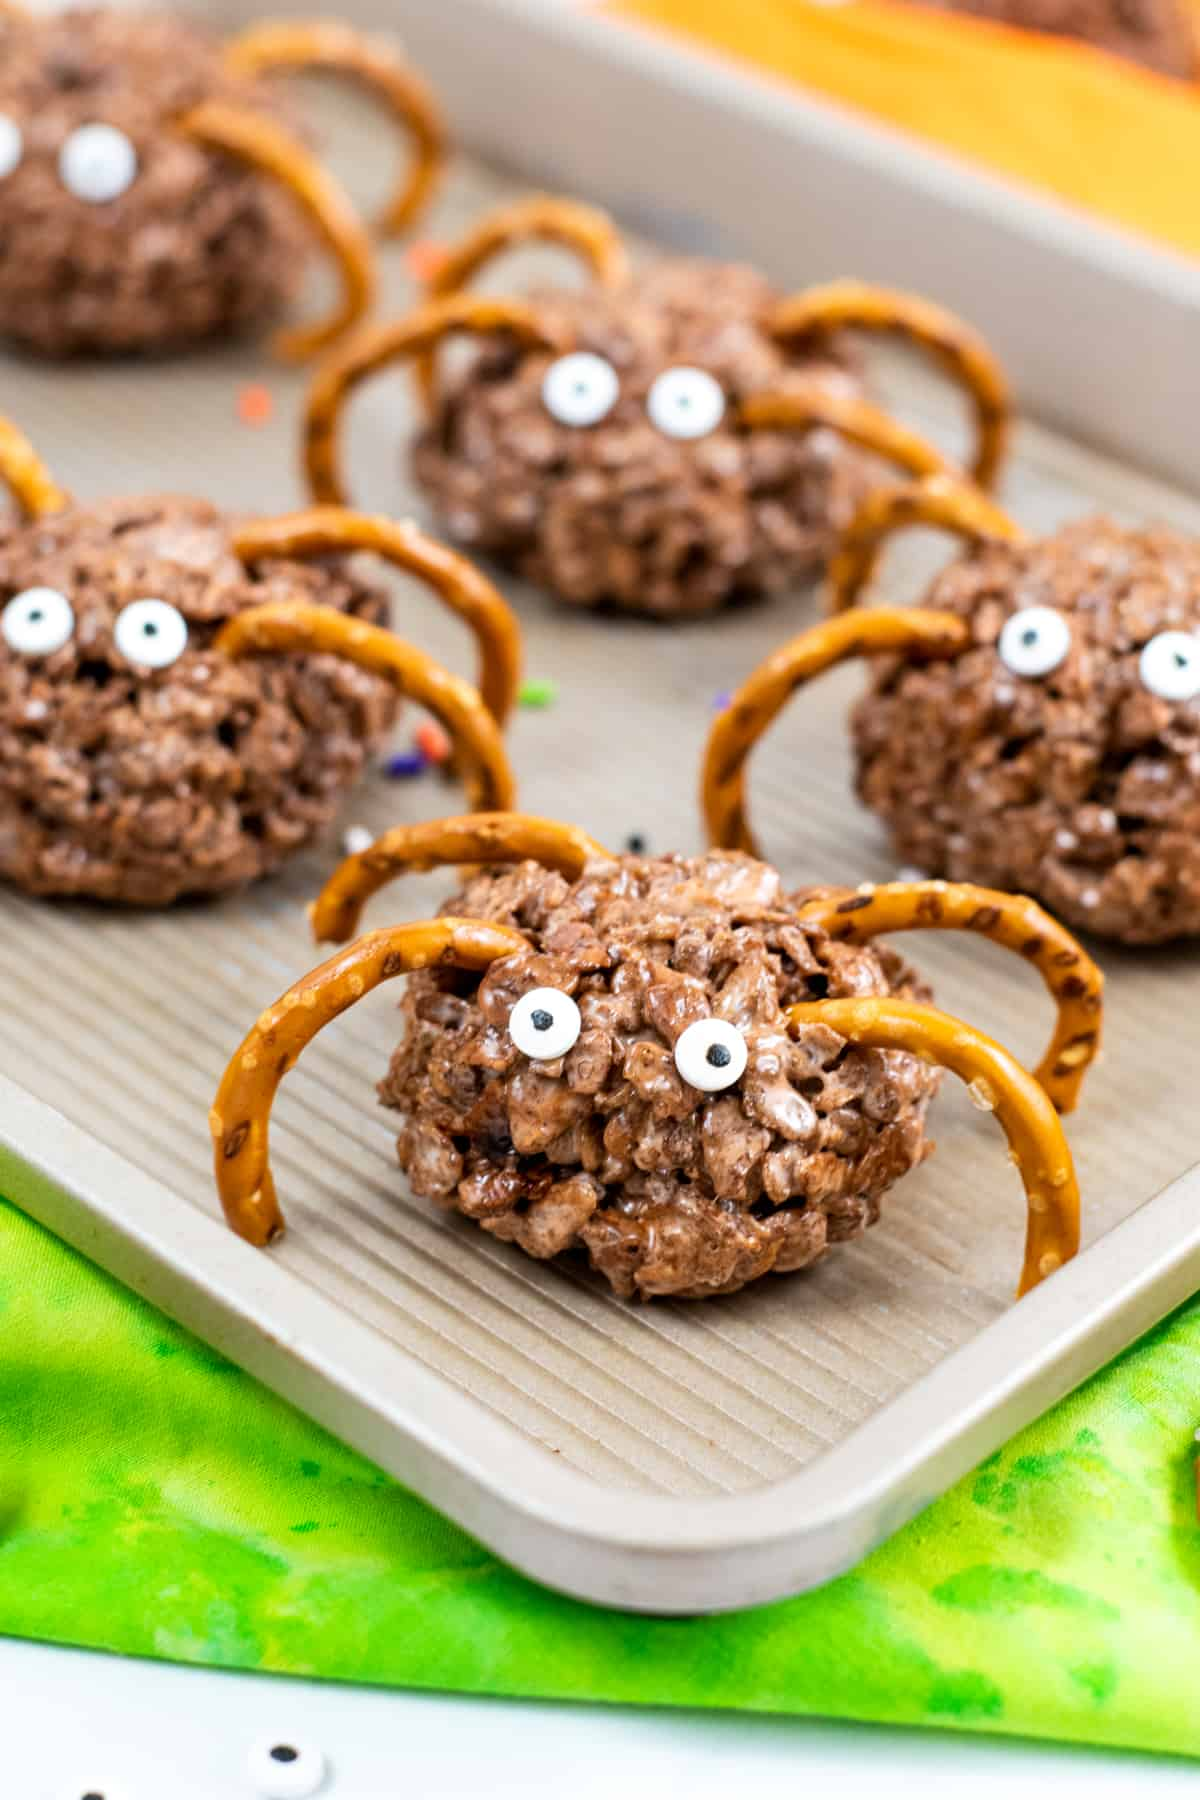 Round chocolate rice cereal treats with pretzel legs and candy eyes